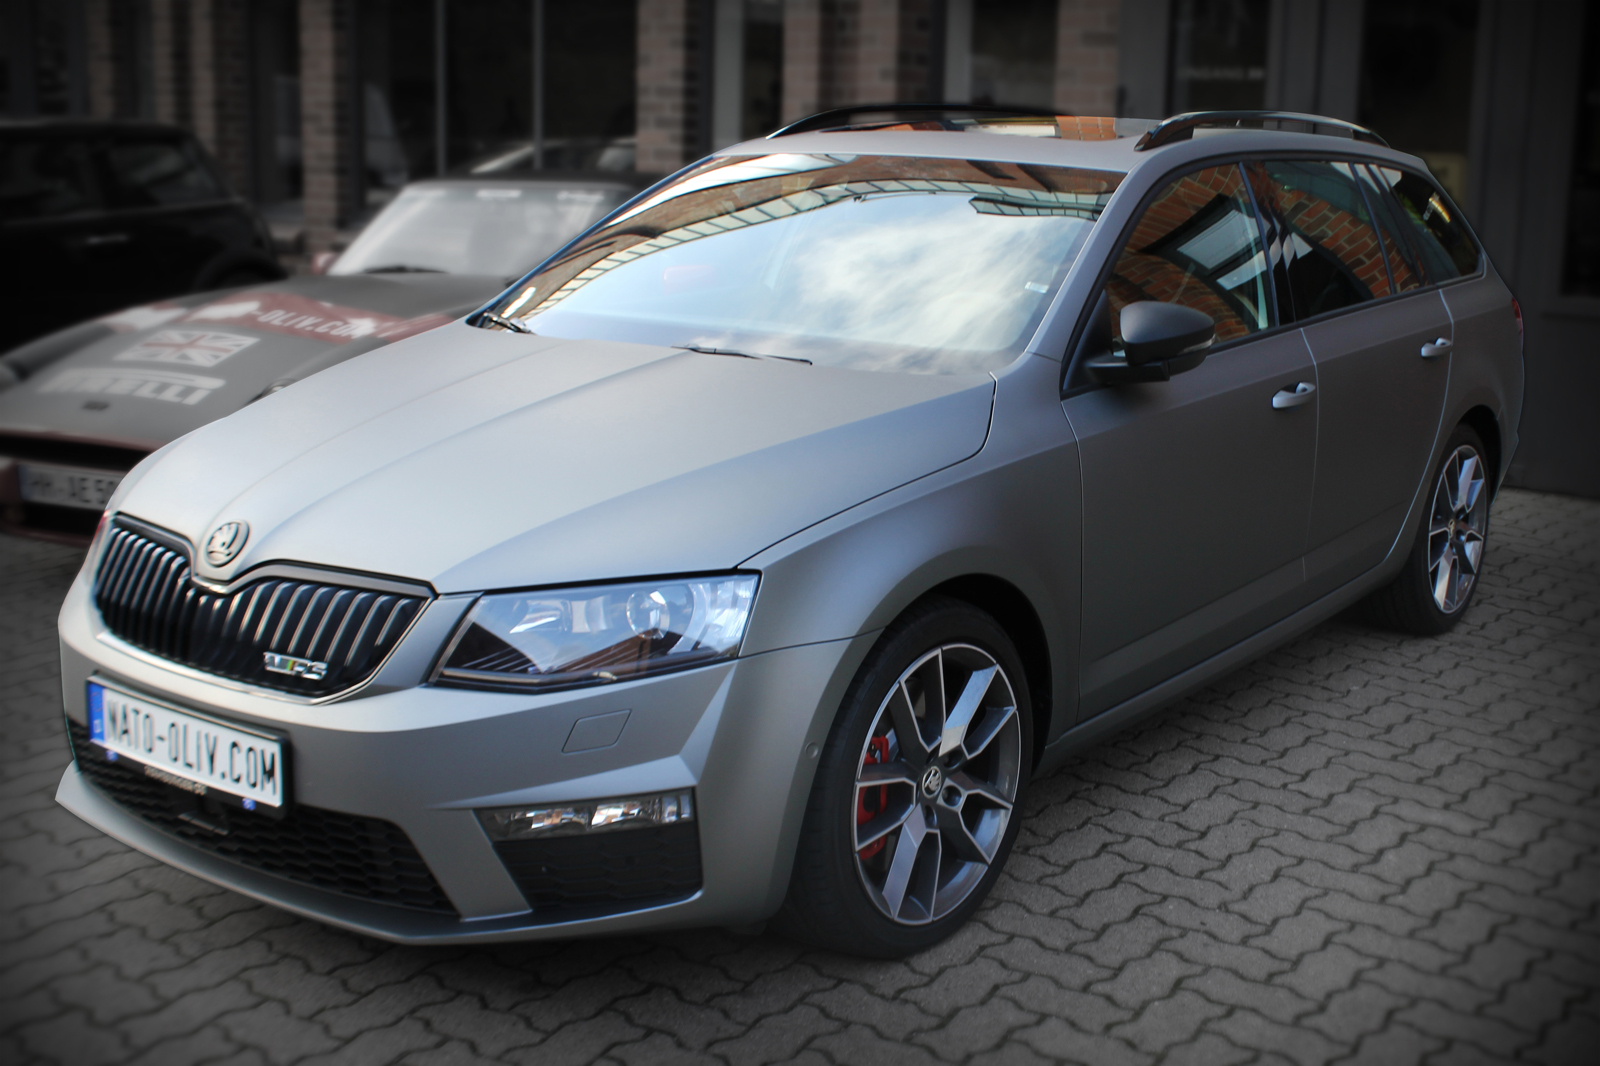 Car Wrapping bei einem Skoda Combi RS mit Folie in gunmetal matt metallic